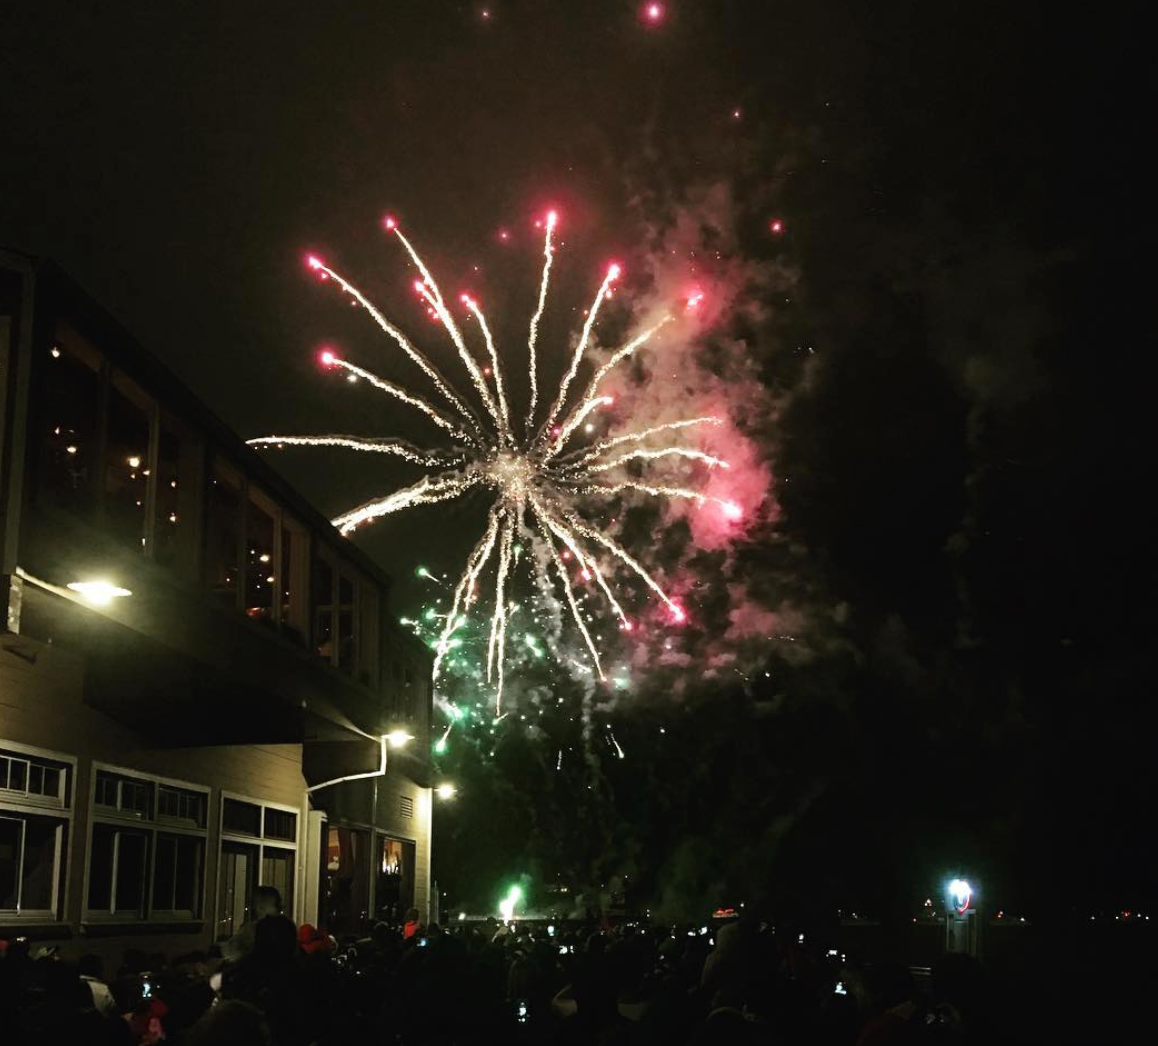 sf-fireworks-1562111206430.png